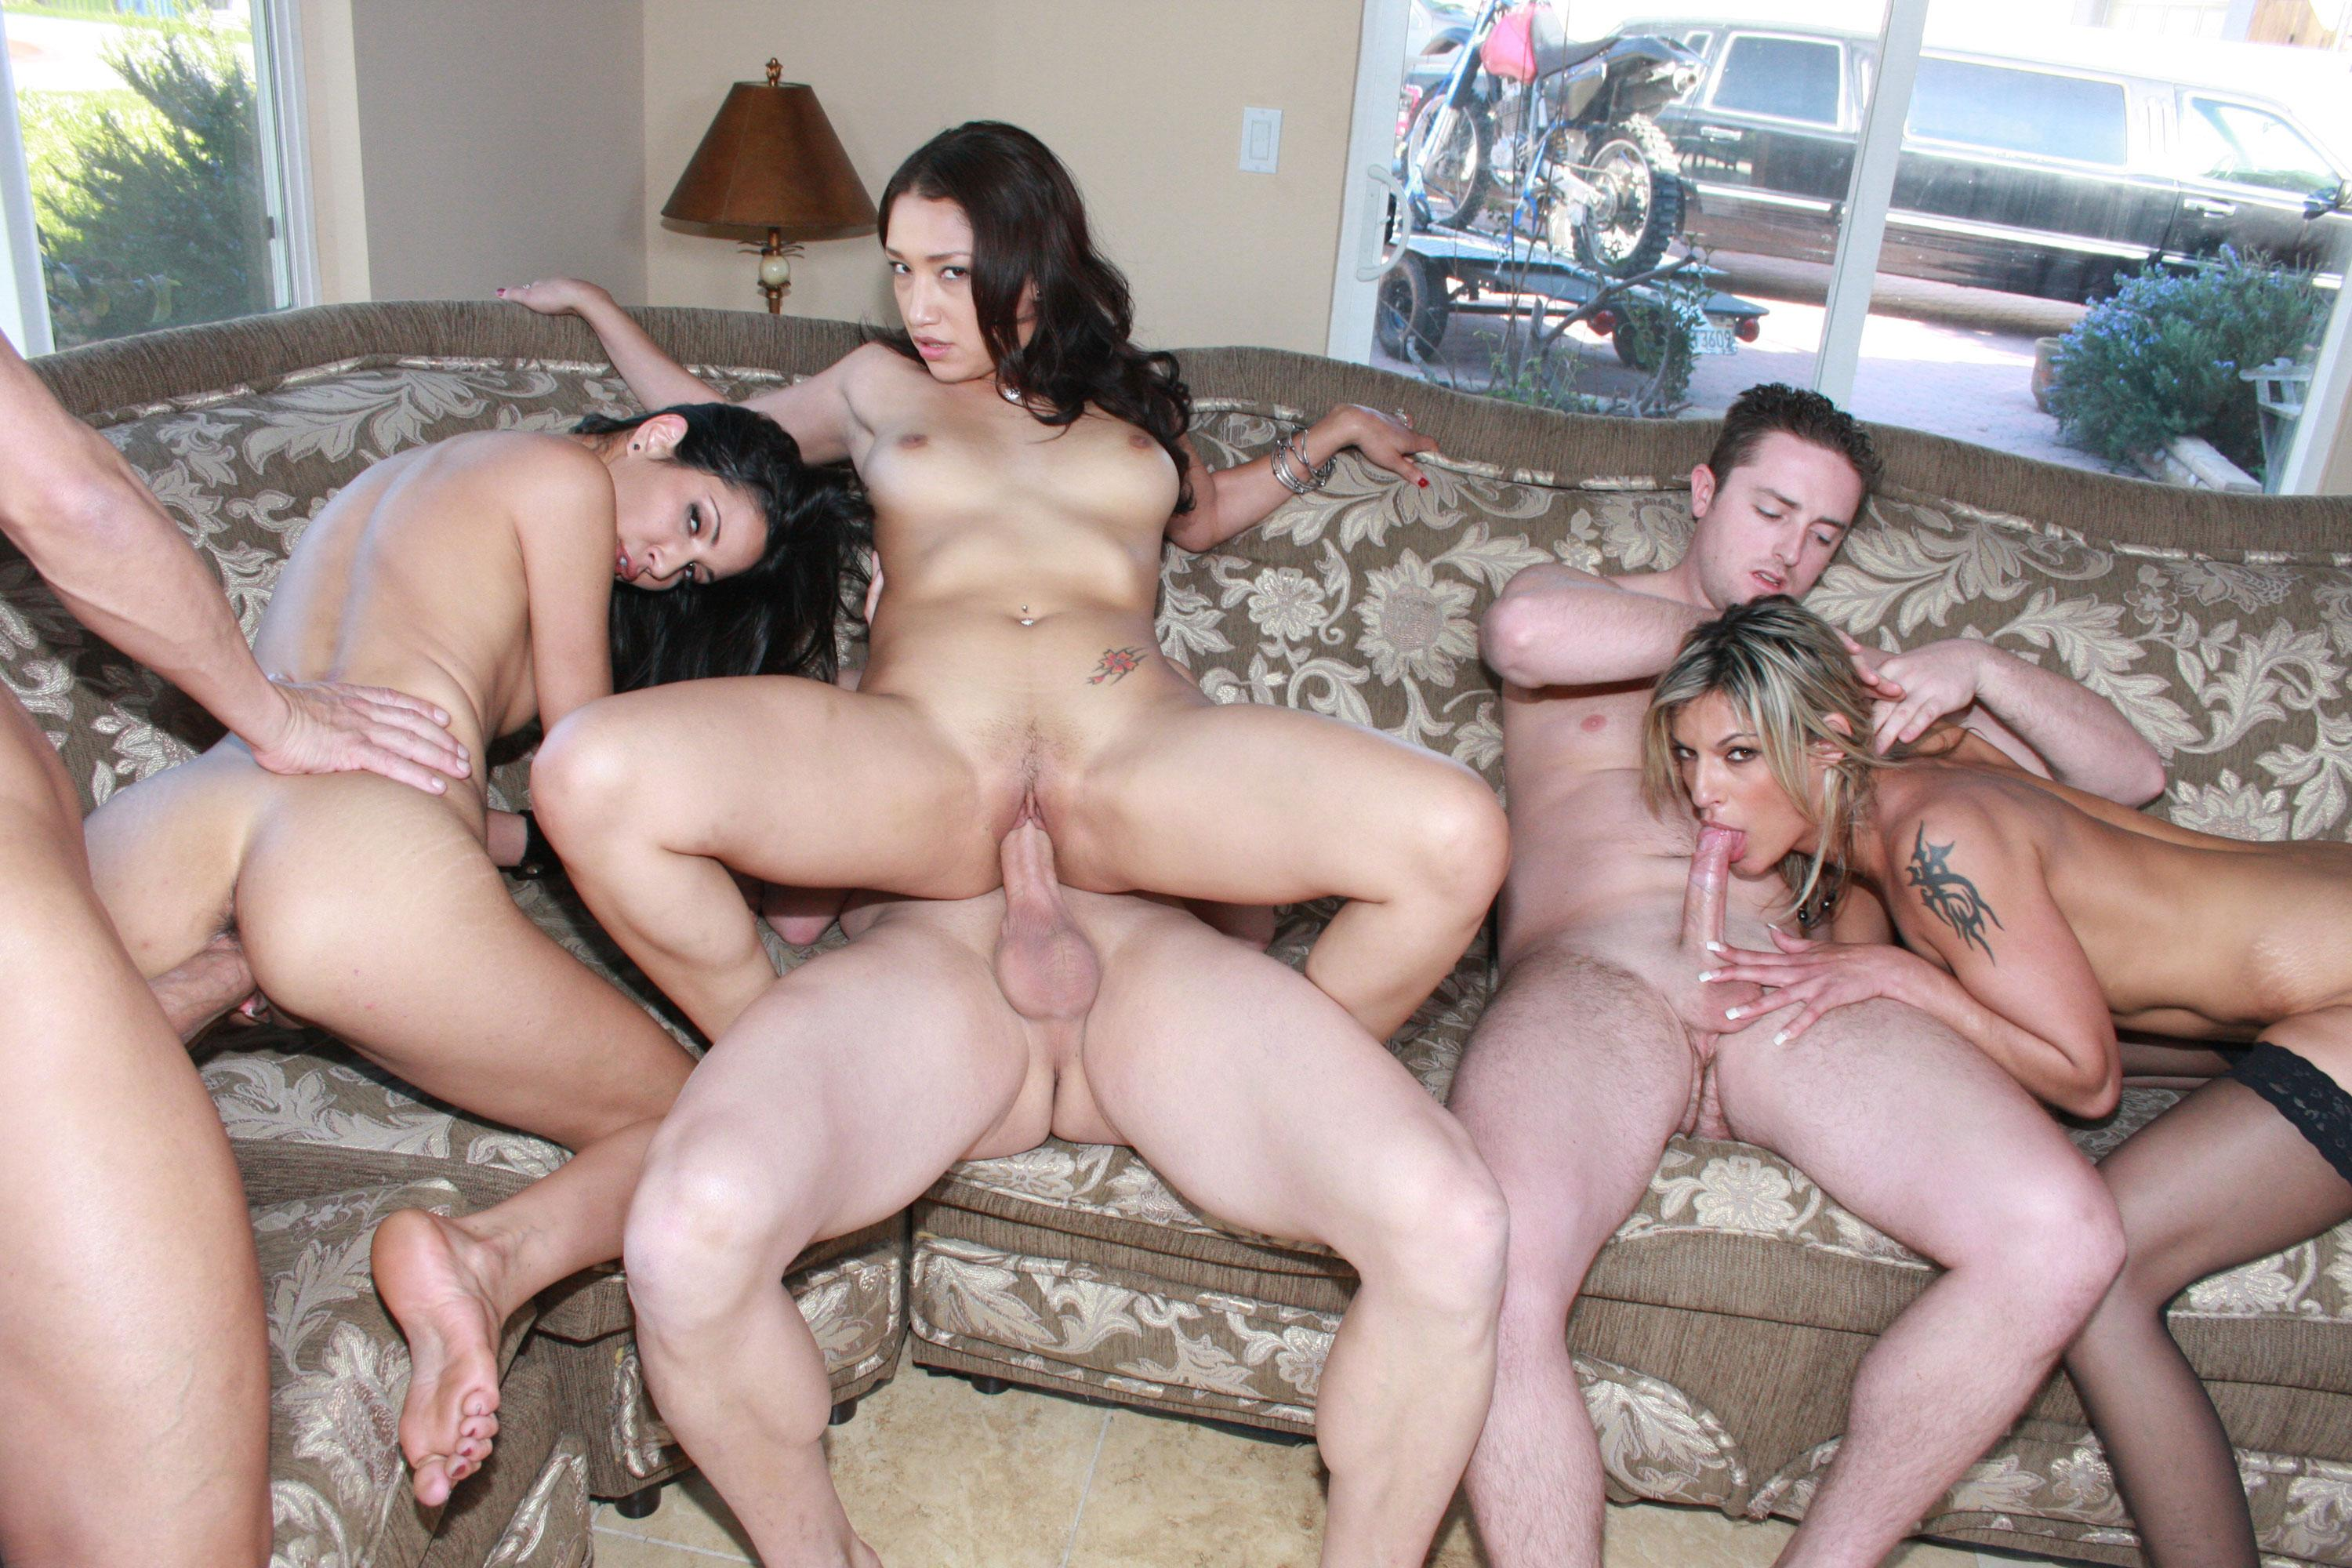 Sassy Naked College Girls Go For Group Fucking Free Porn Photo Pornyp